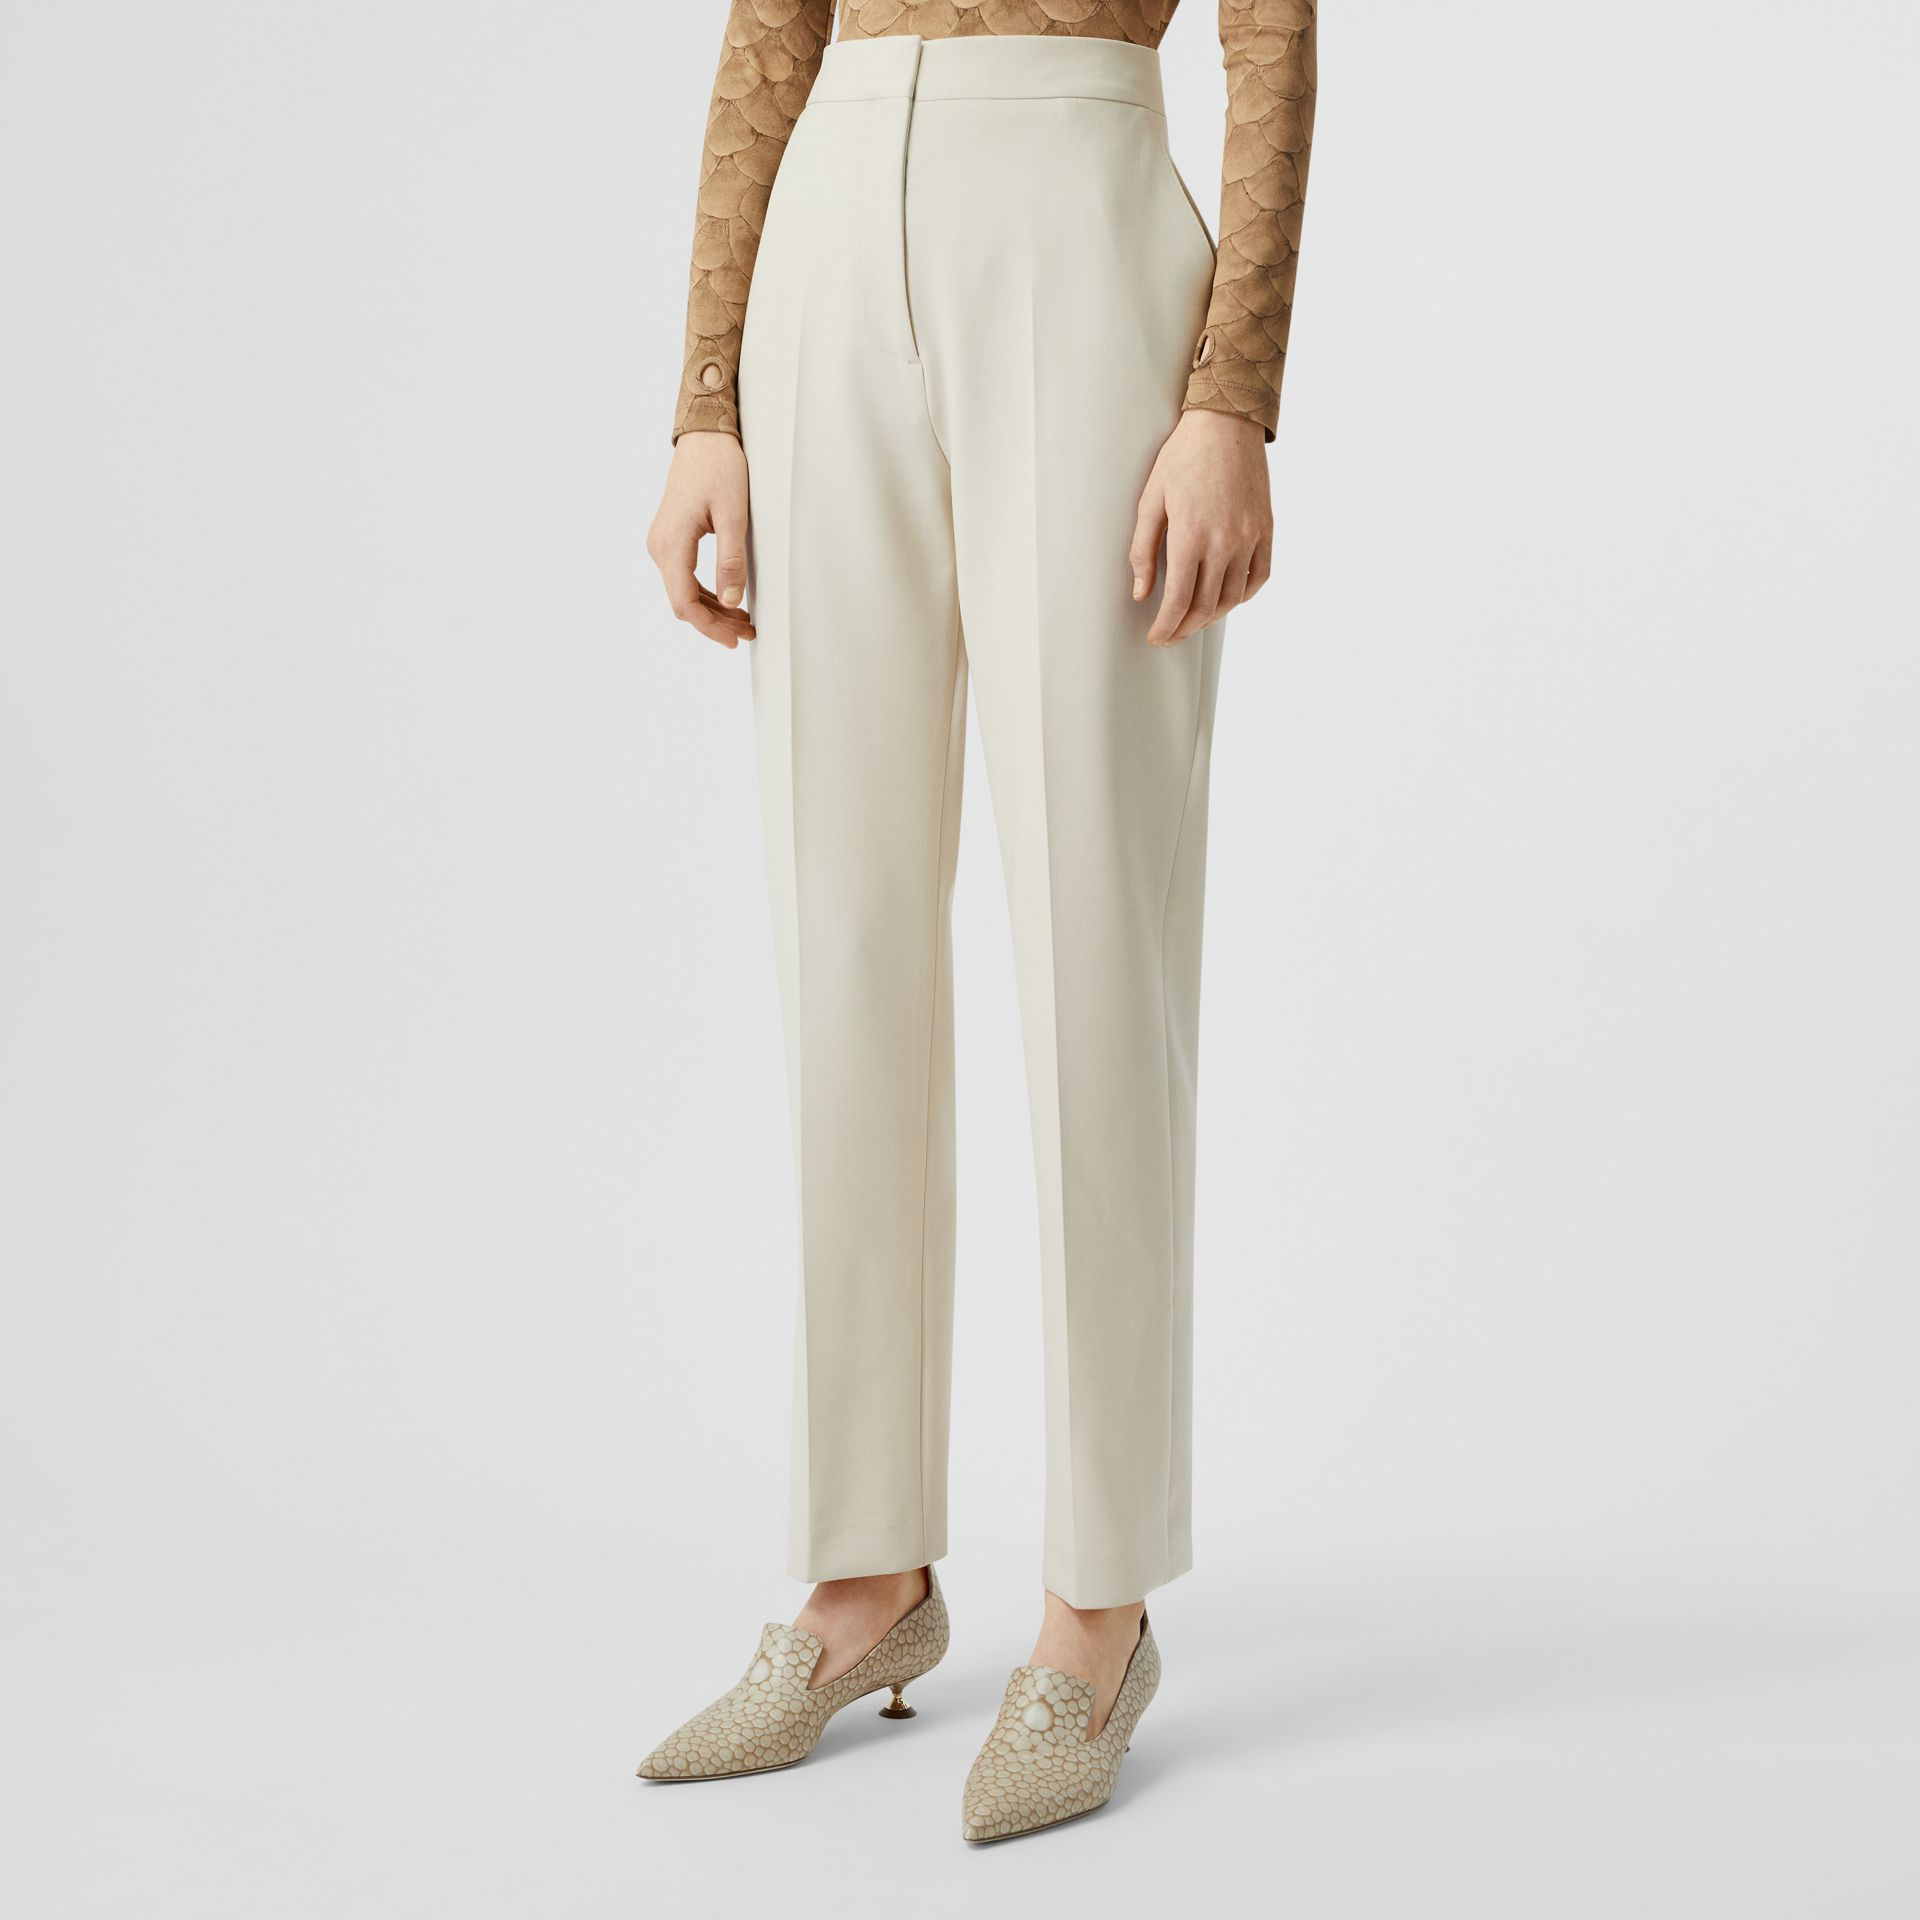 Pantalon tailleur droit en laine stretch (Ocre Pâle) - Femme | Burberry - photo de la galerie 5